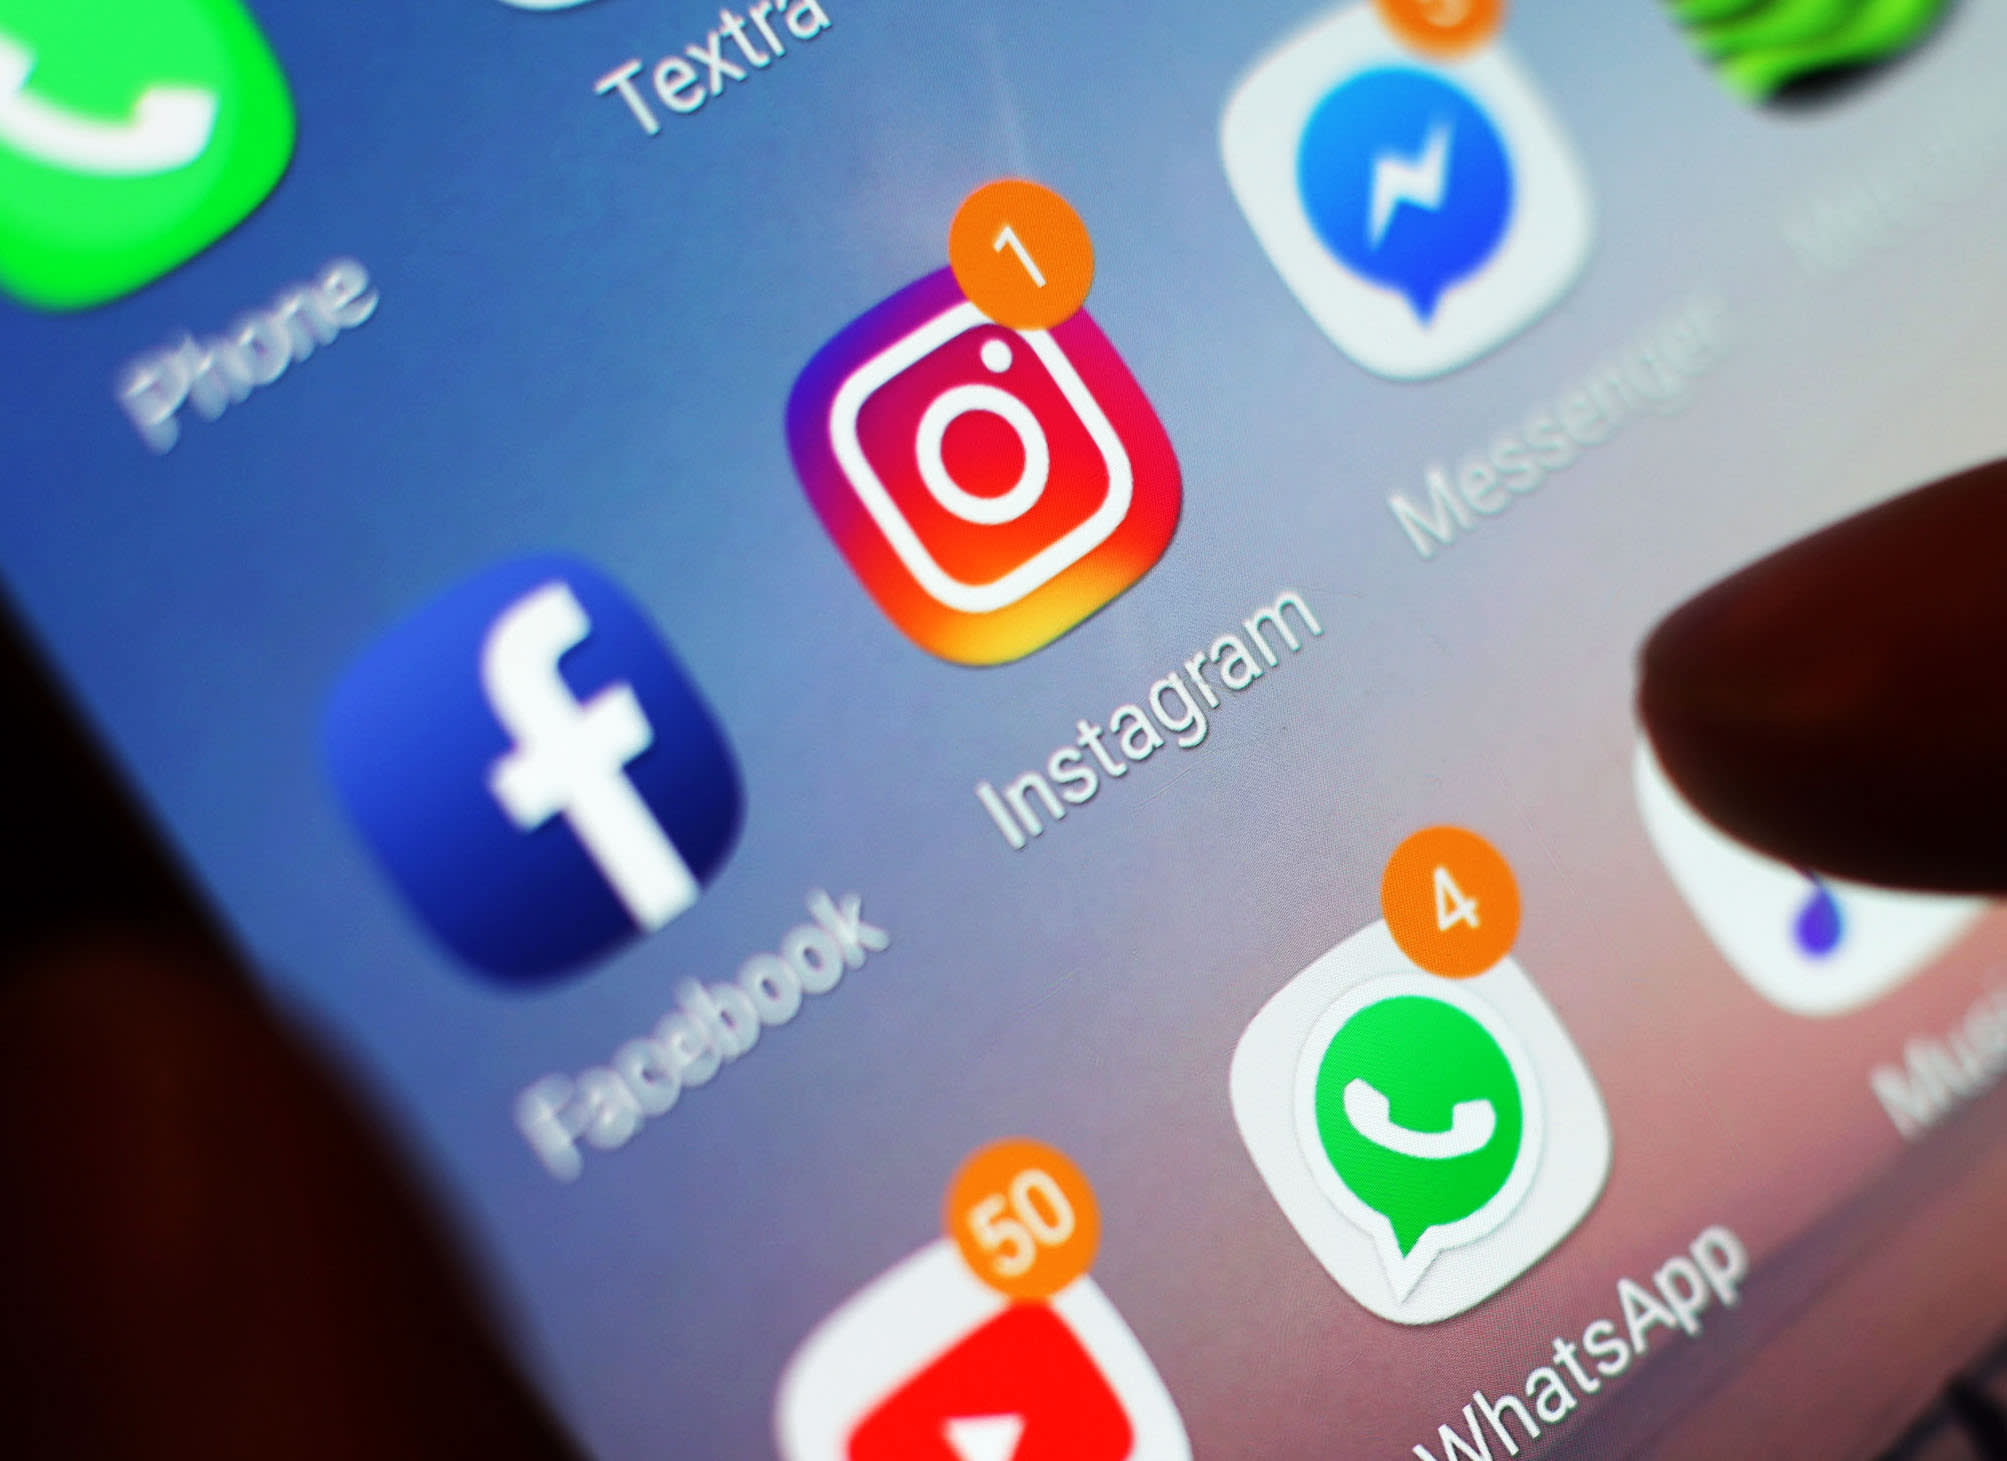 MPs call for new laws to crack down on tech firms promoting scams